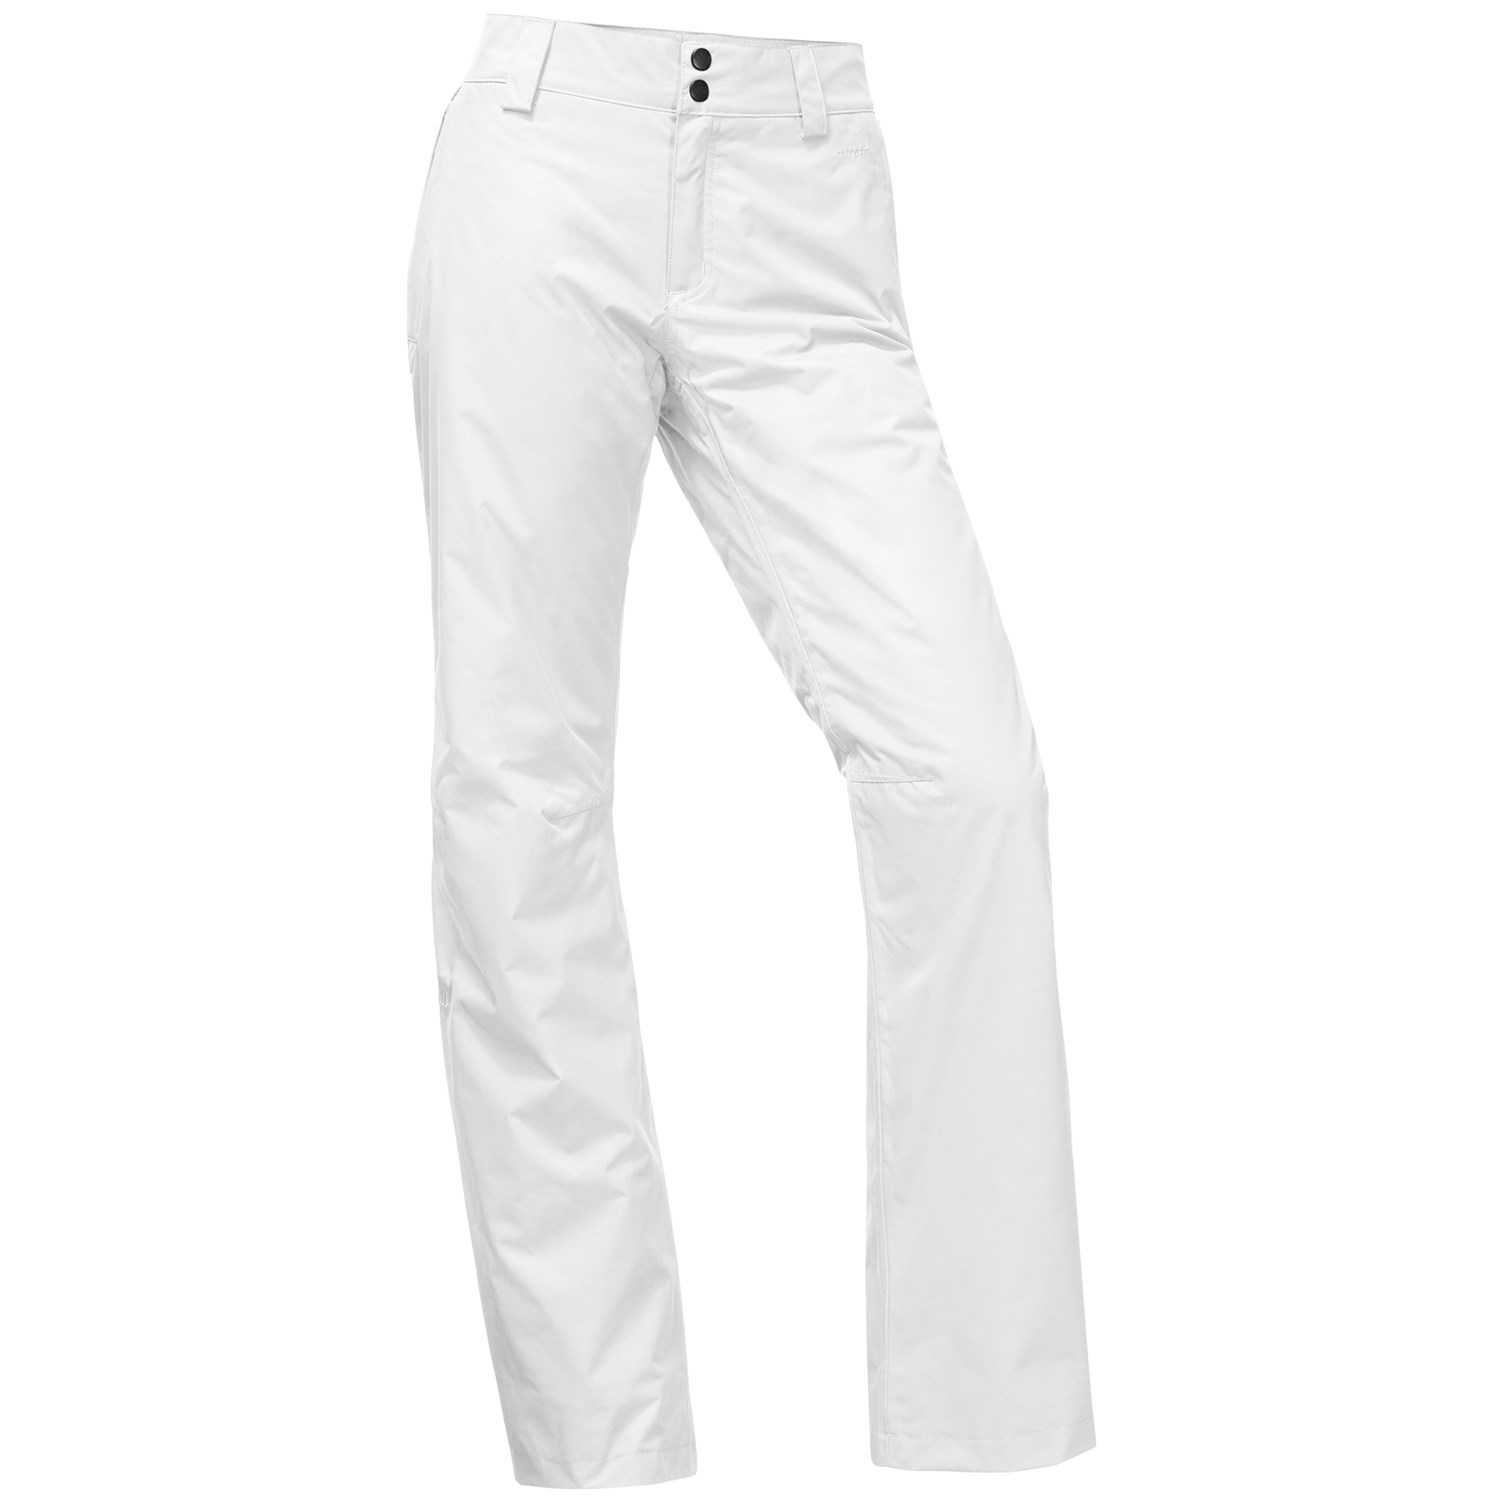 288aa7fc4b7 The North Face Sally Pants - Women's